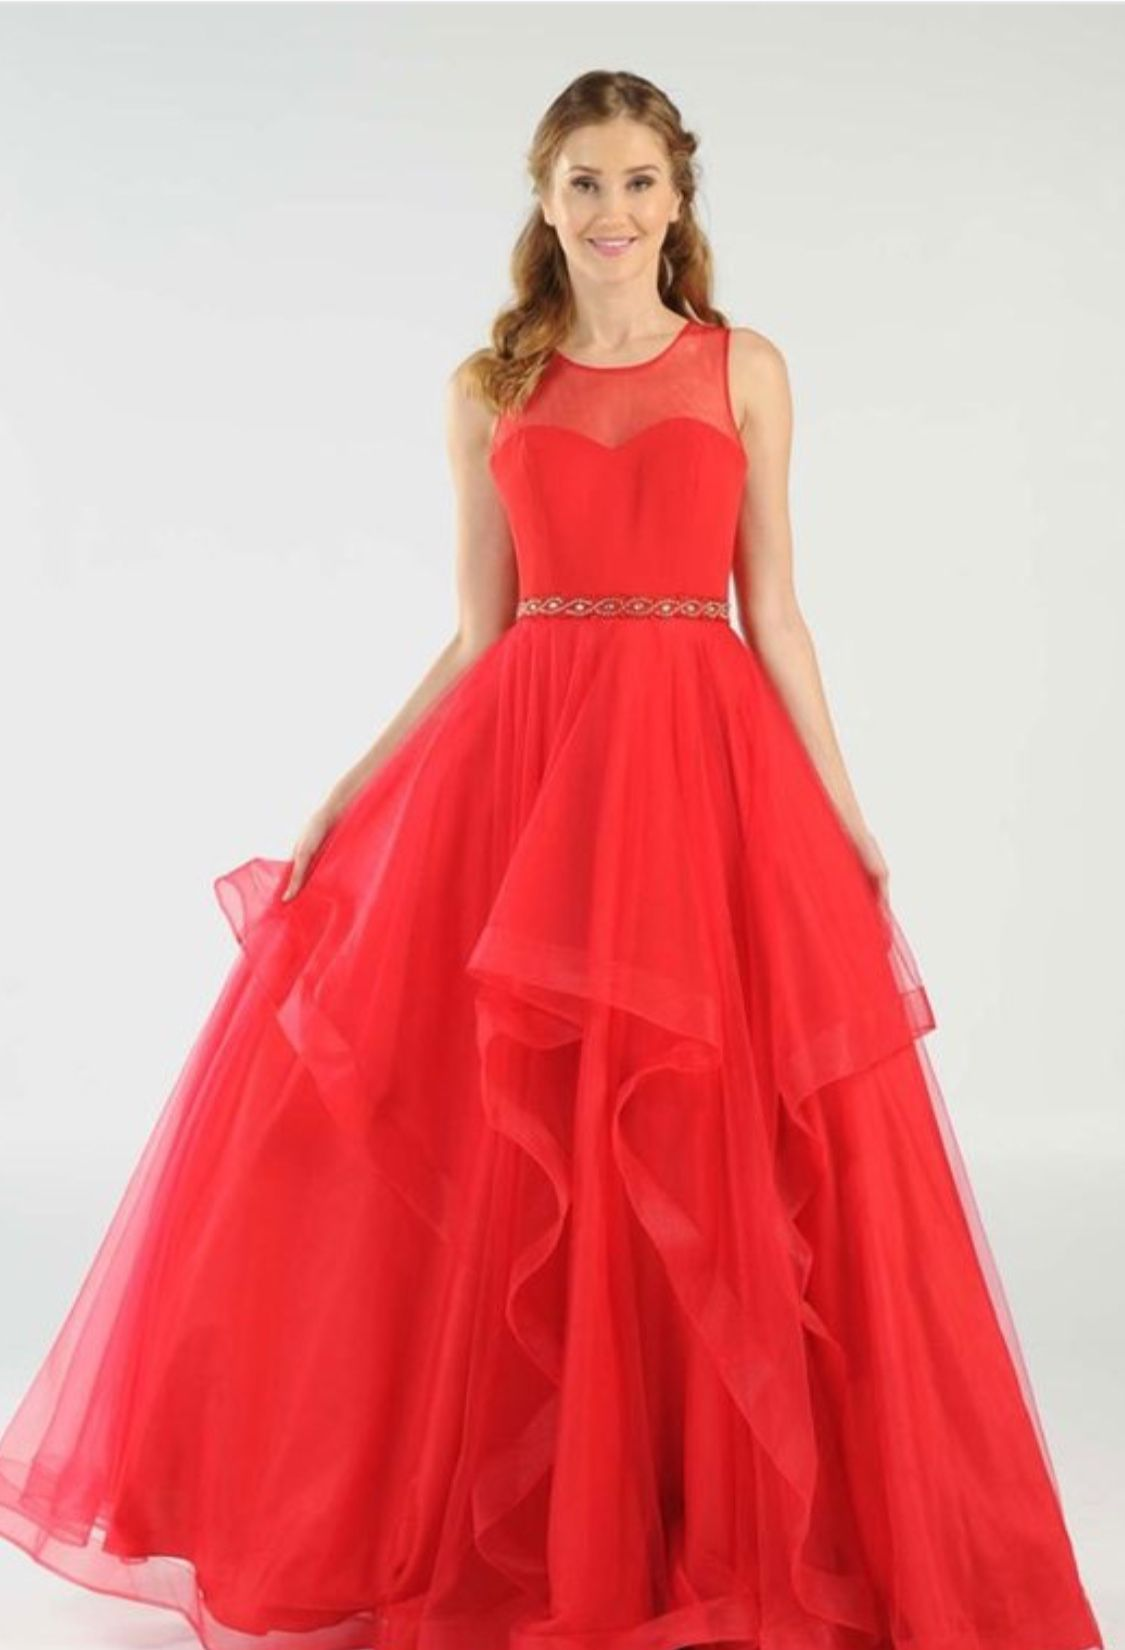 Flowy ball gowns Designs for you Facebook shop | Prom gowns 2018 ...